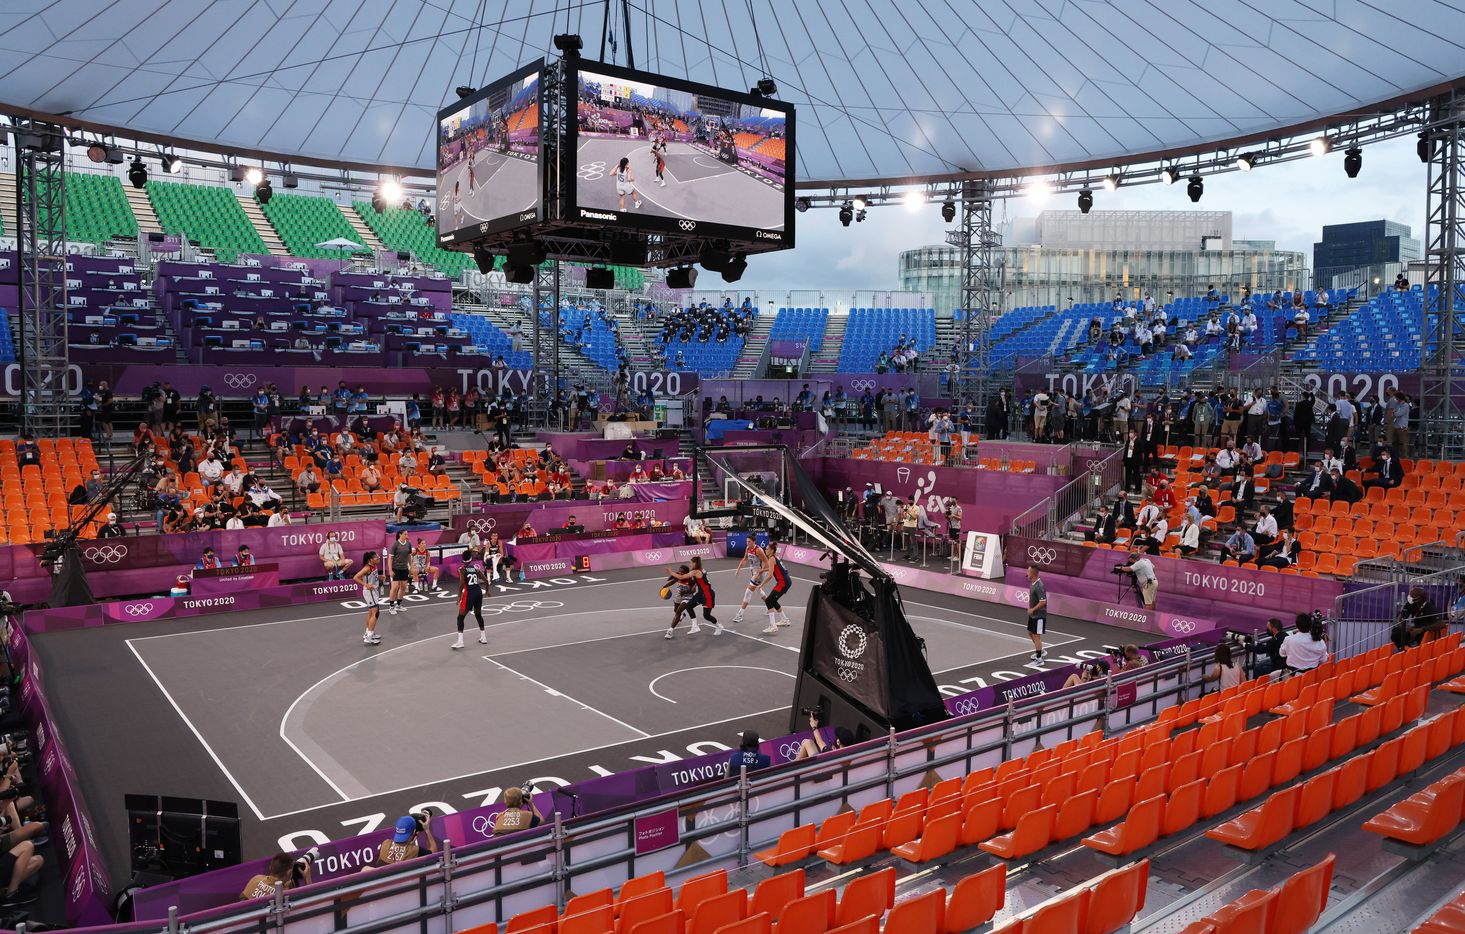 USA plays France in a 3x3 women's basketball game during the postponed 2020 Tokyo Olympics at Aomi Urban Sports Park on Saturday, July 24, 2021, in Tokyo, Japan. USA defeated France 17-10 in the game. (Vernon Bryant/The Dallas Morning News)